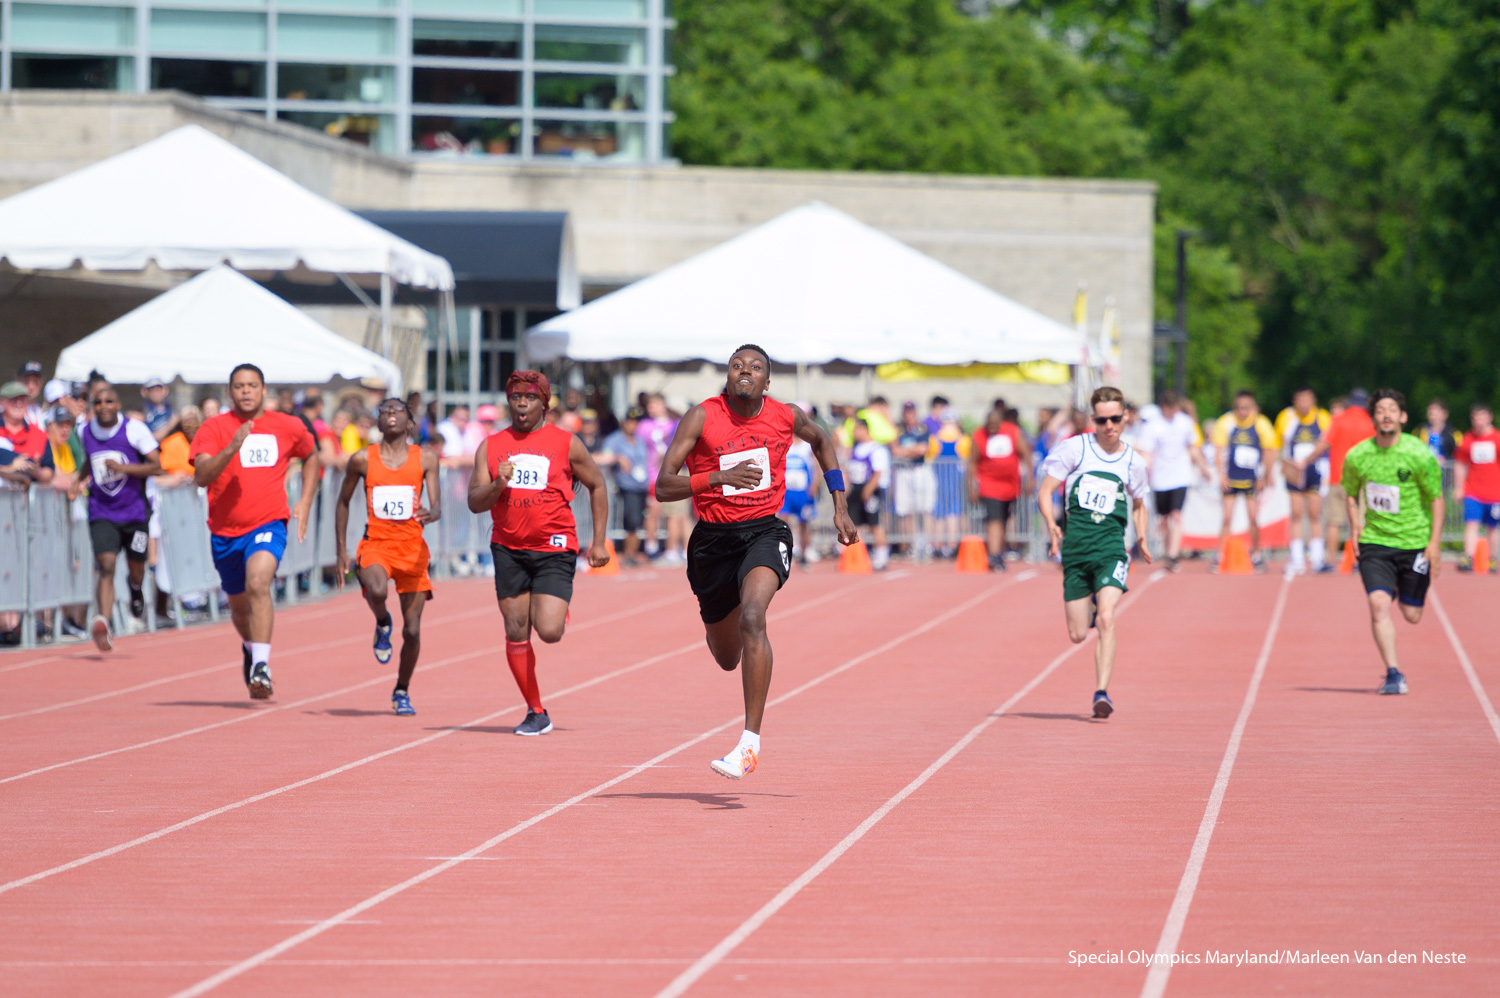 Short distance runners on the track of Unitas Stadium, Towson University, MD. on Sunday, June 9, 2019.